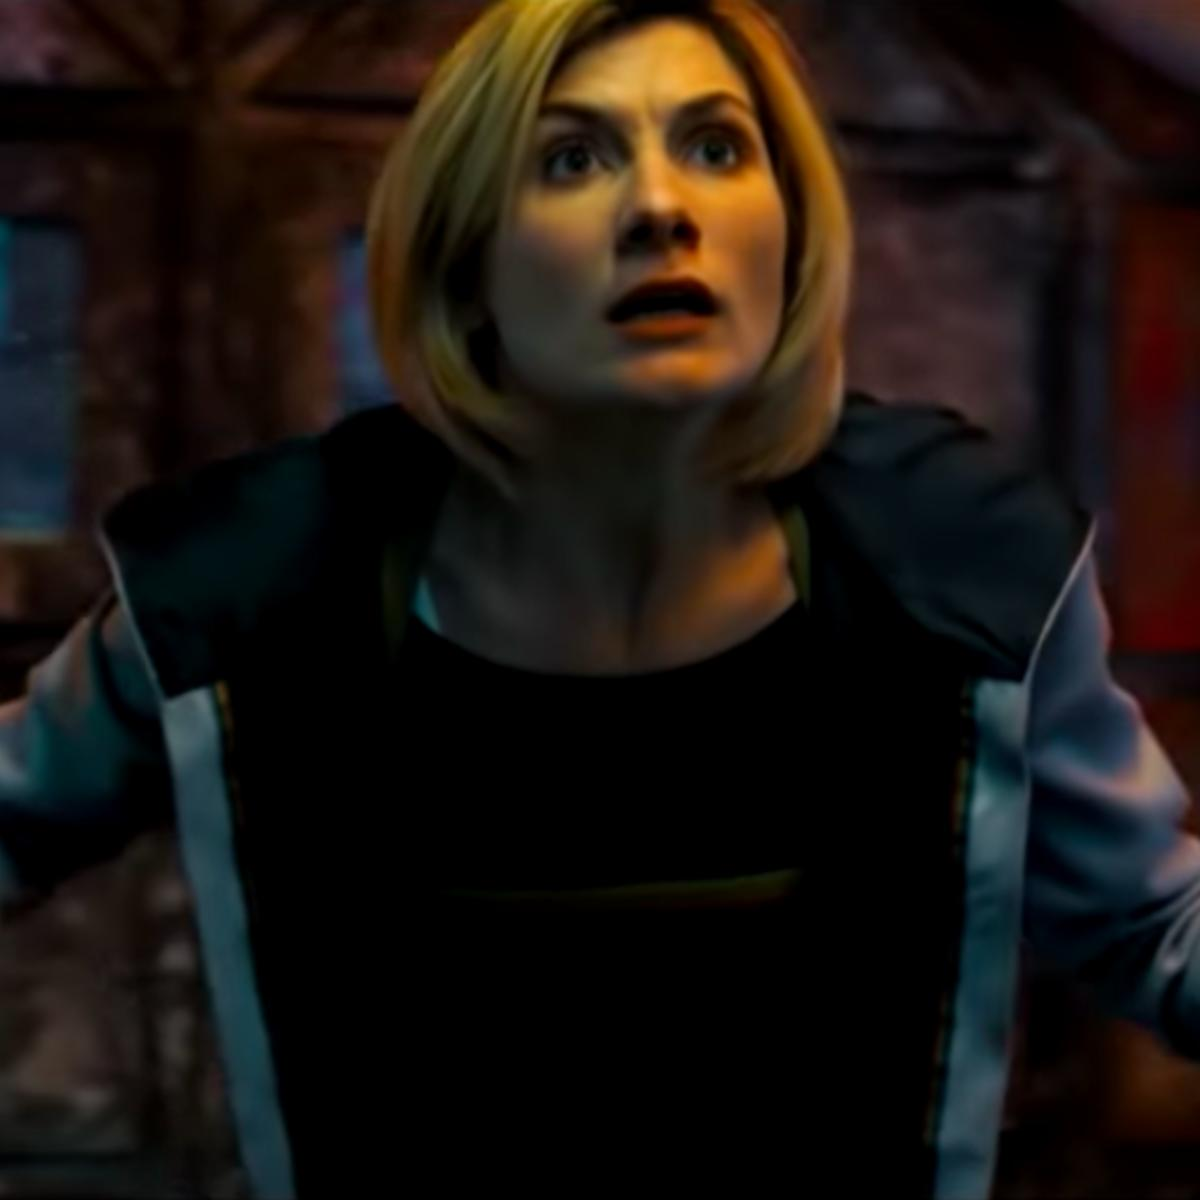 Doctor Who: Jodie Whittaker is 'Glorious' in new trailer for Season 11